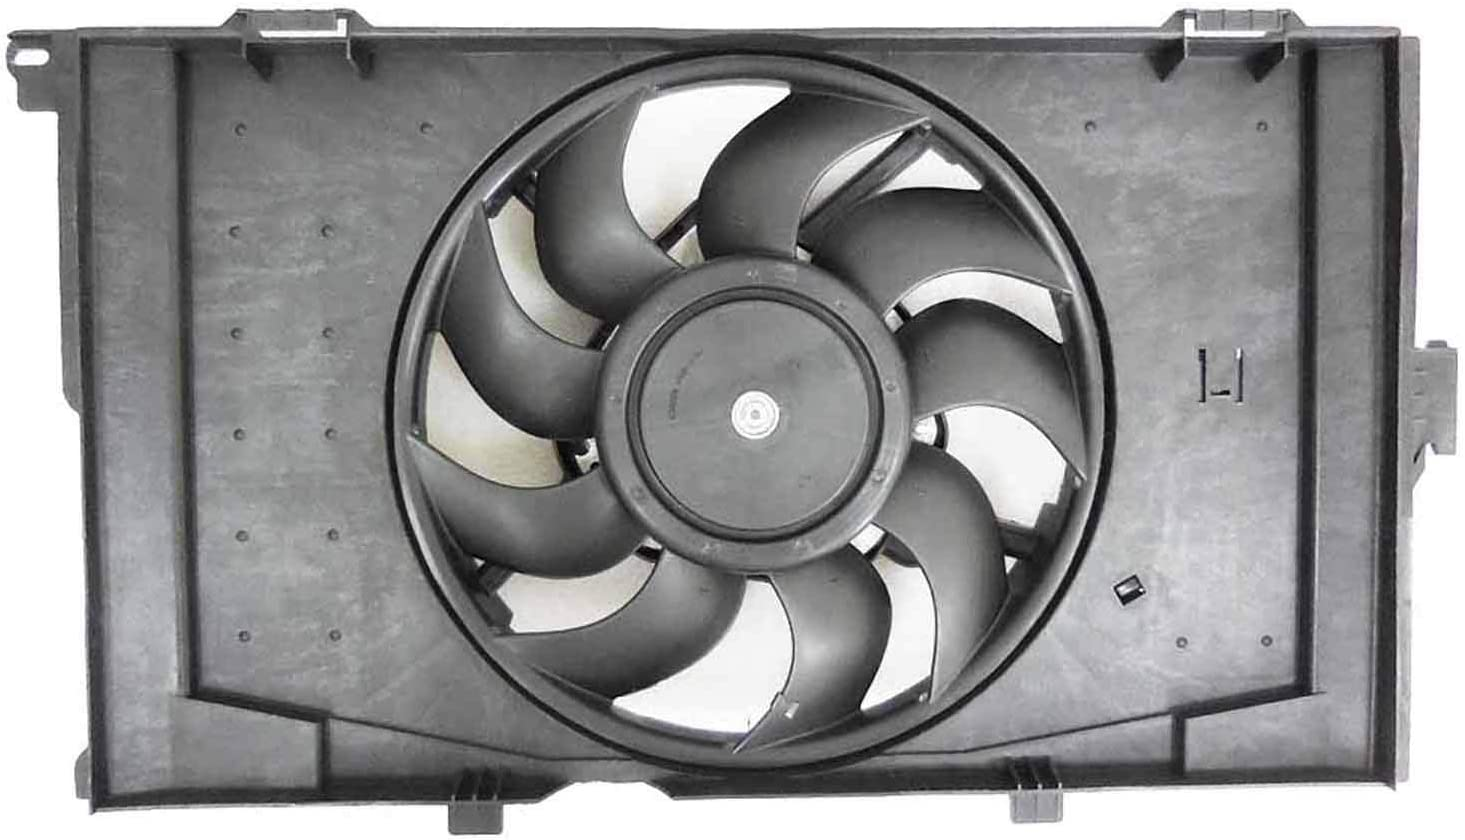 2014-2019 Bmw I3 Radiator And Condenser Fan Assembly With One Big Fan; Without Range Extender; From 9//14 Partslink BM3115134